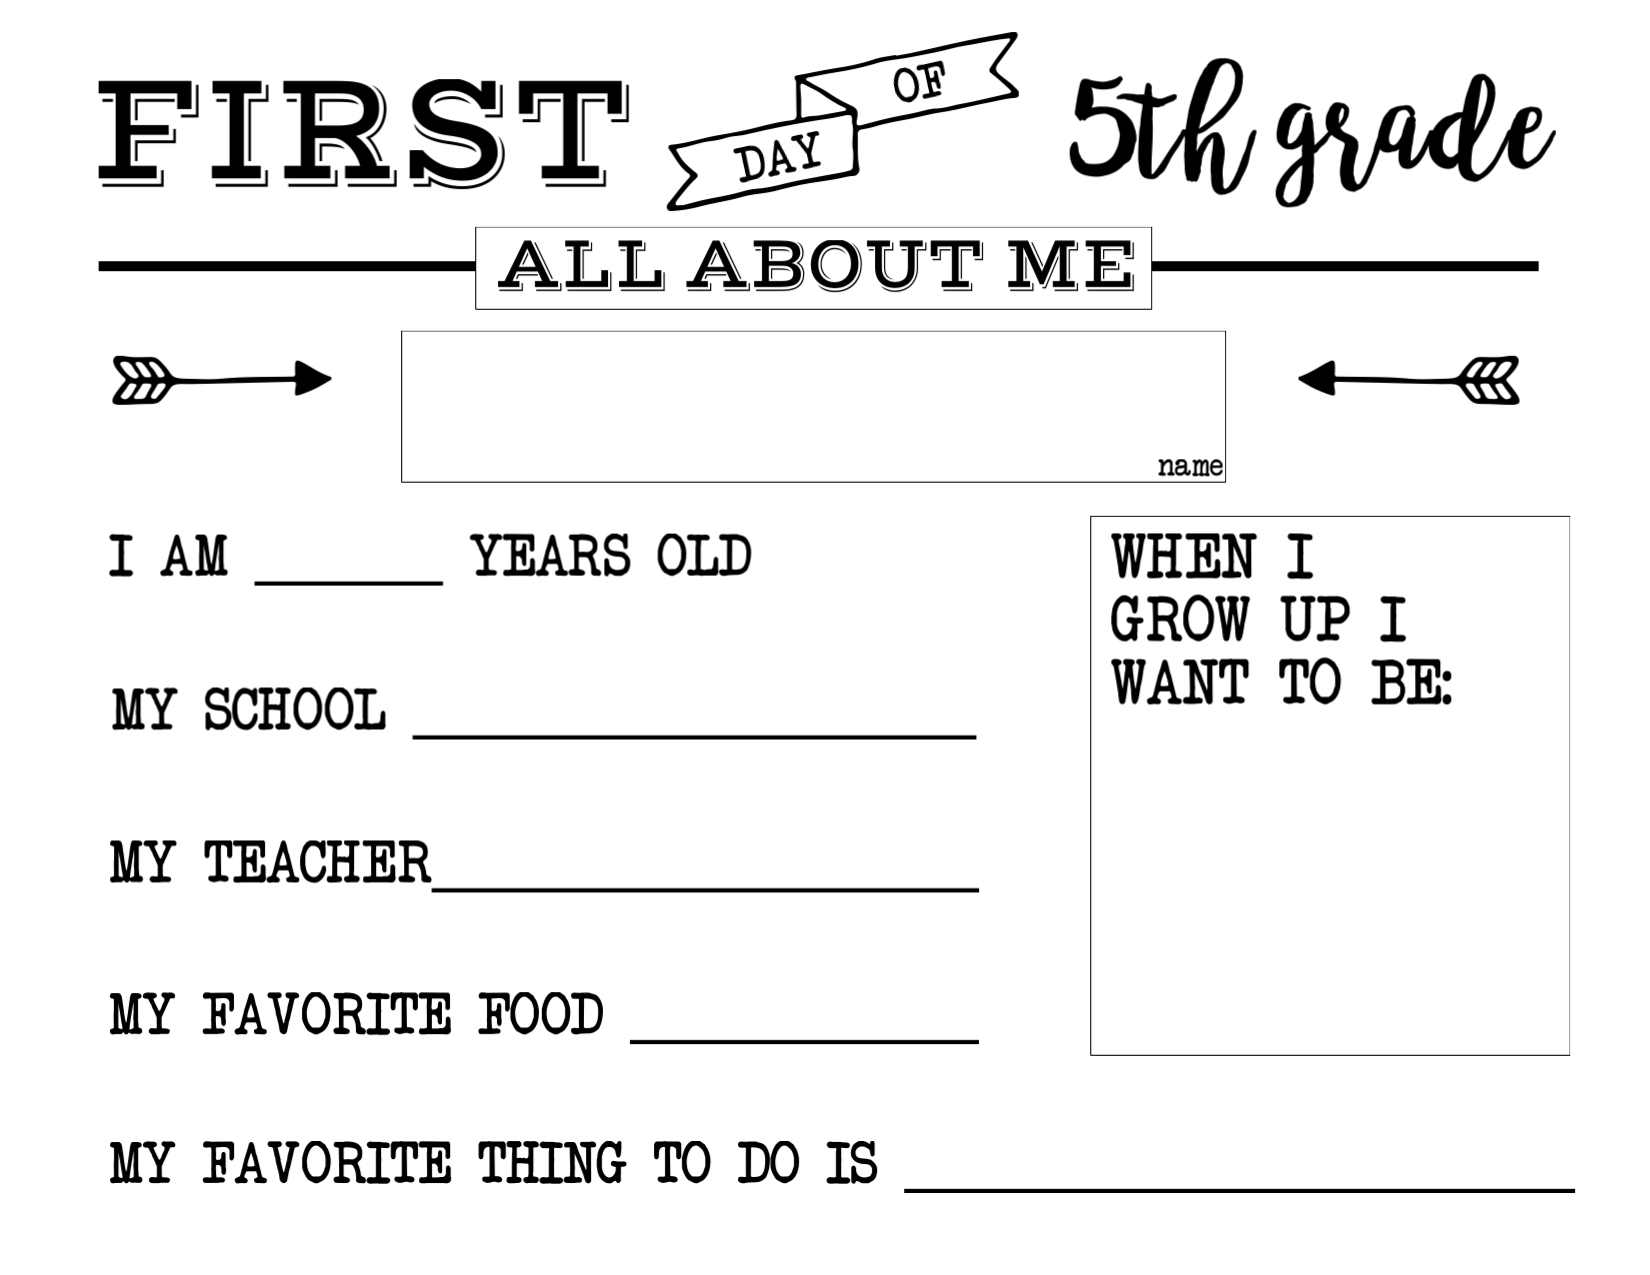 worksheet 5th Grade First Day Of School Worksheets first day of school all about me sign paper trail design print